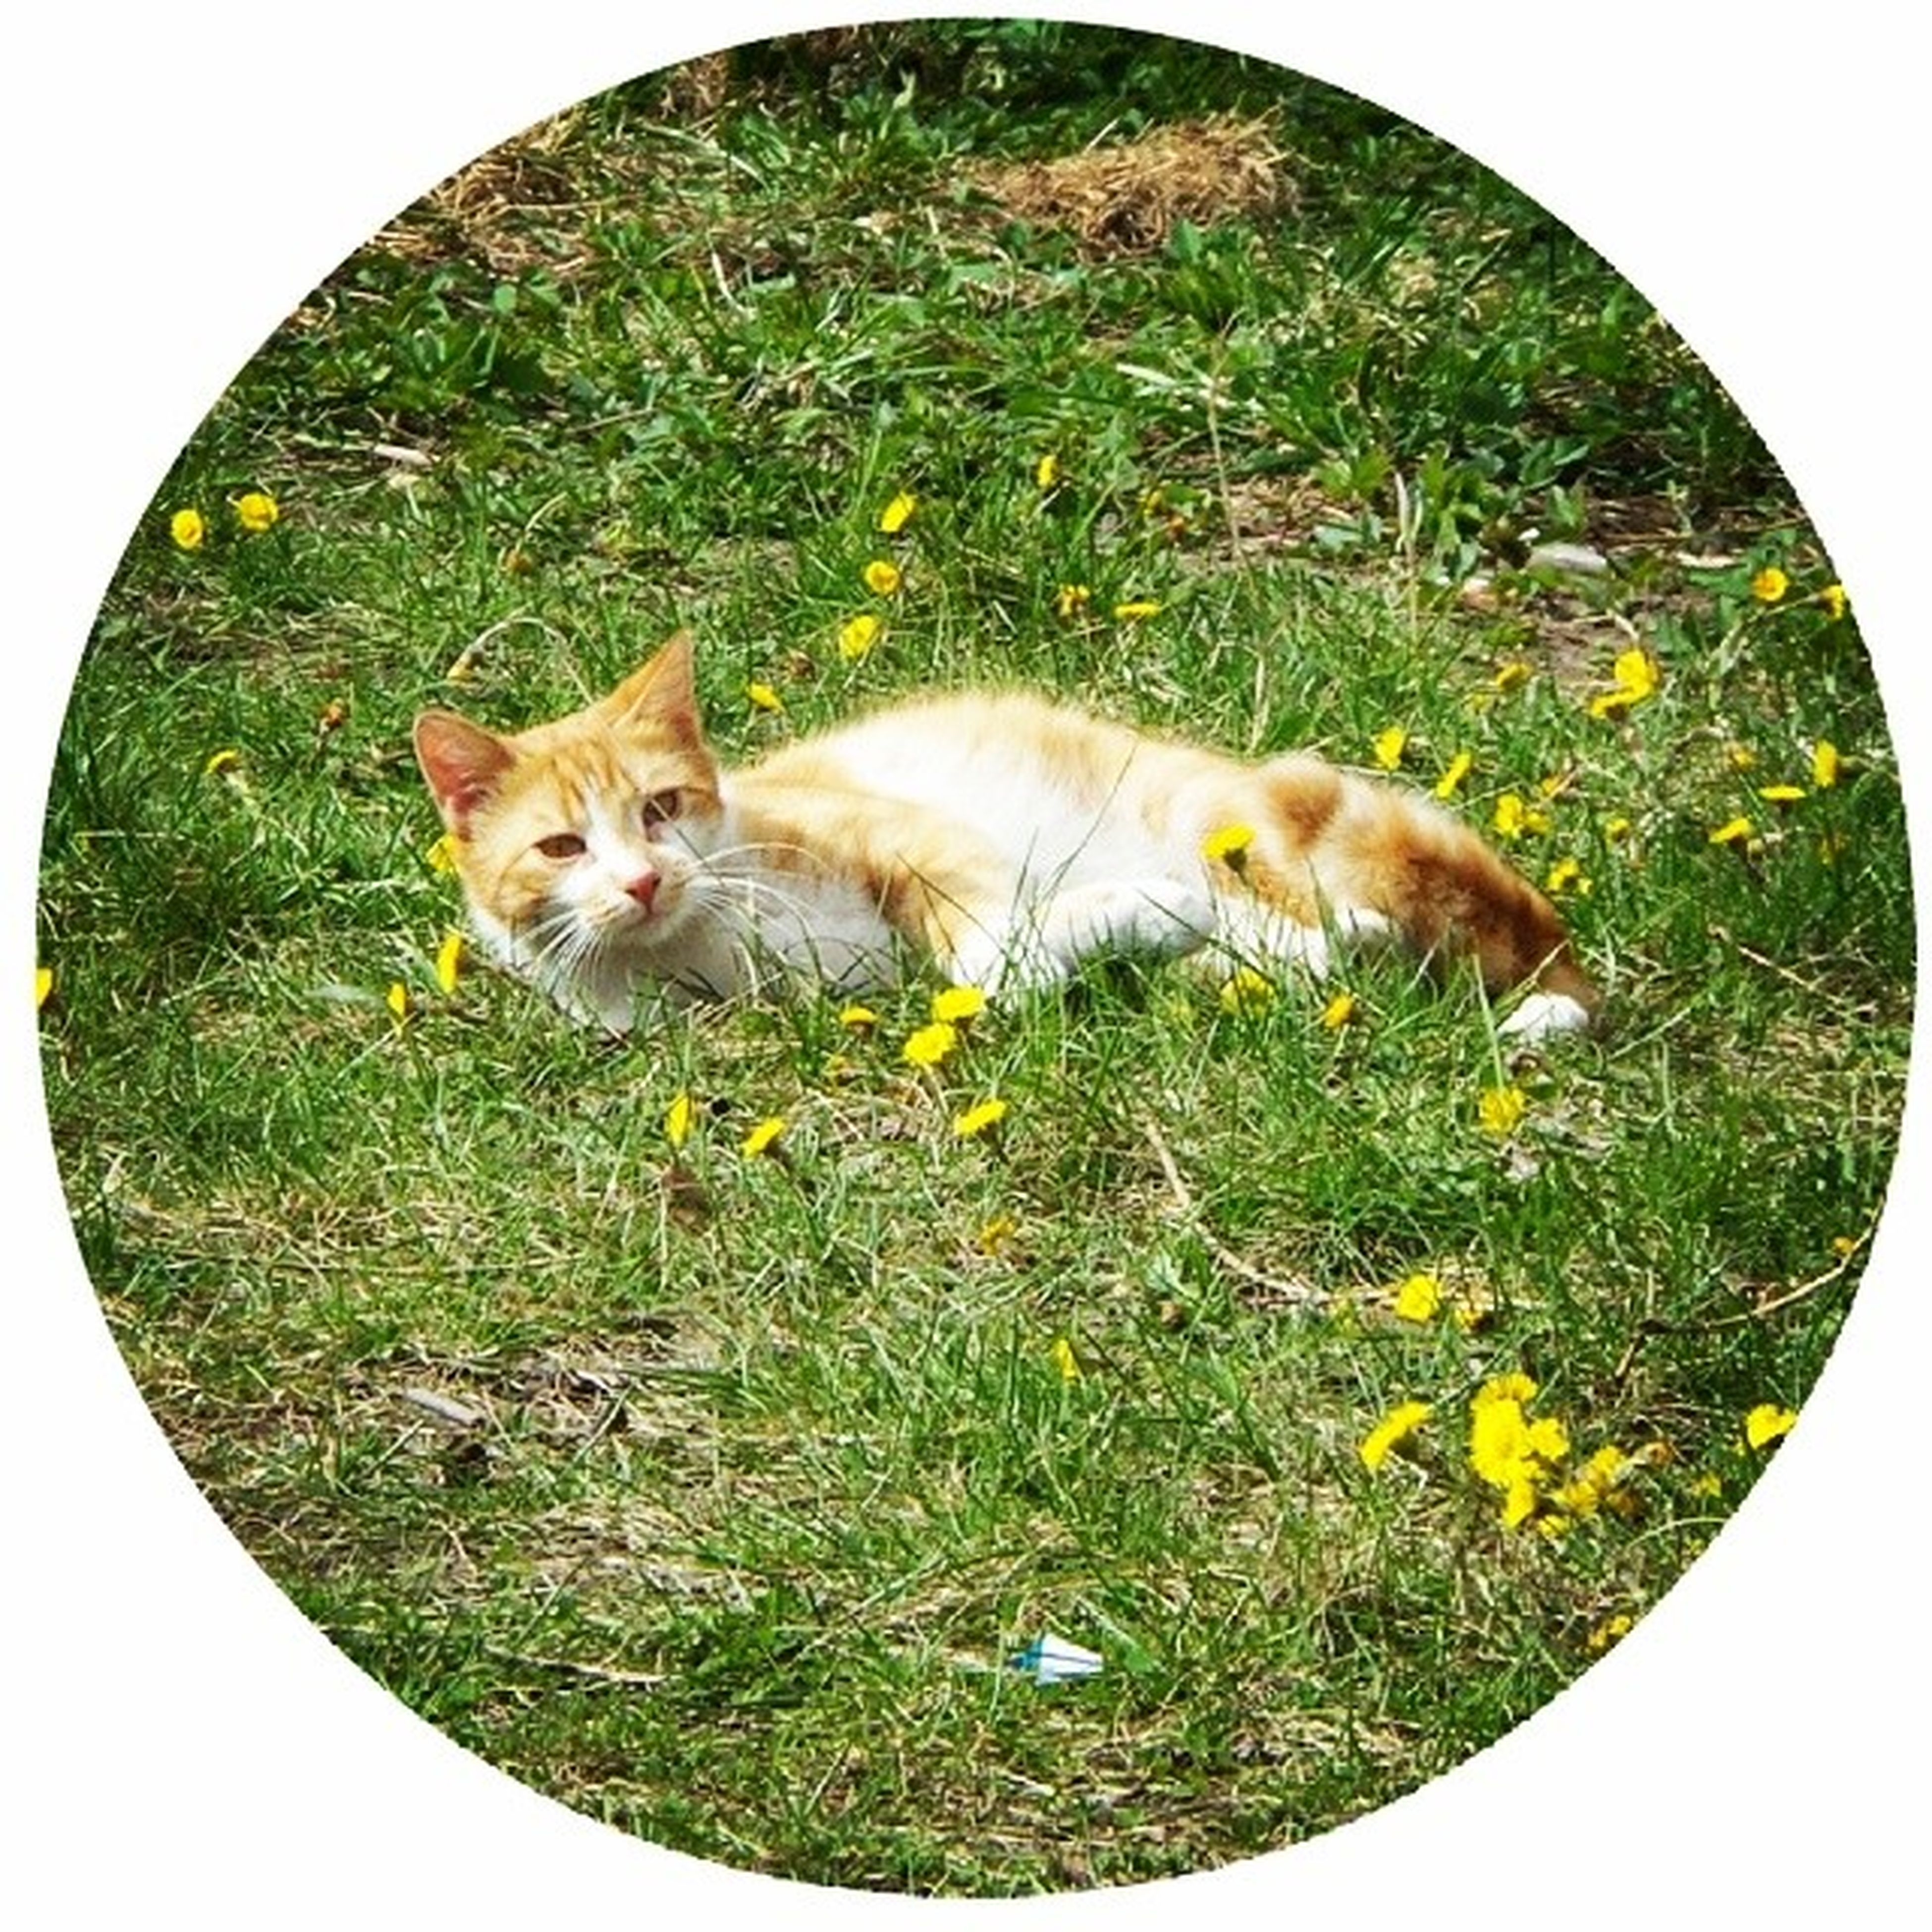 domestic animals, animal themes, mammal, grass, pets, field, grassy, one animal, green color, cat, domestic cat, relaxation, two animals, nature, no people, transfer print, feline, day, full length, looking at camera